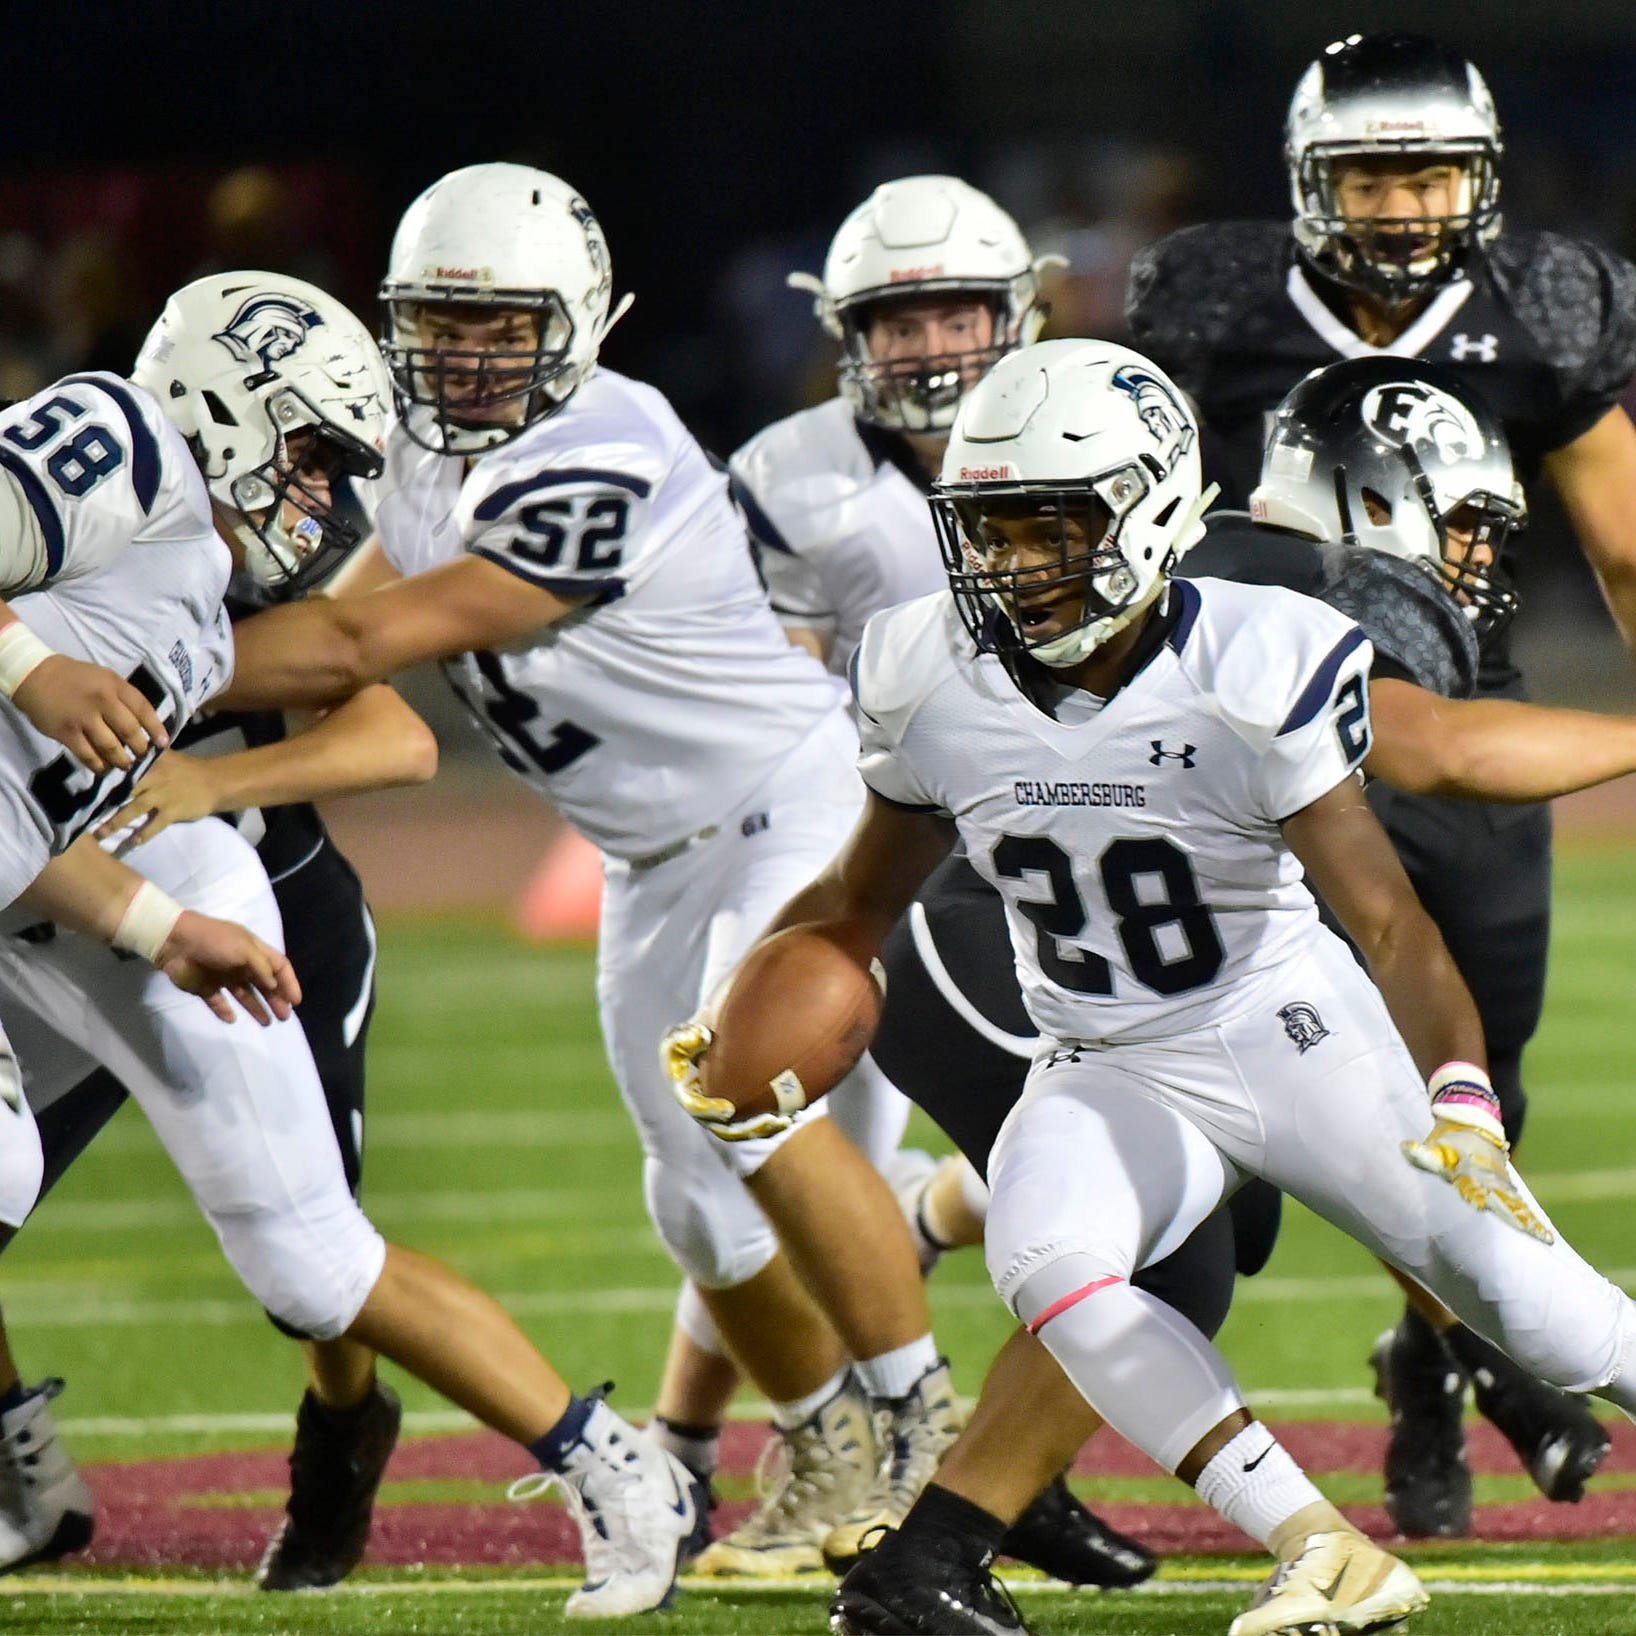 Quick hits: Chambersburg edges CD East behind Jones' 298 yard night